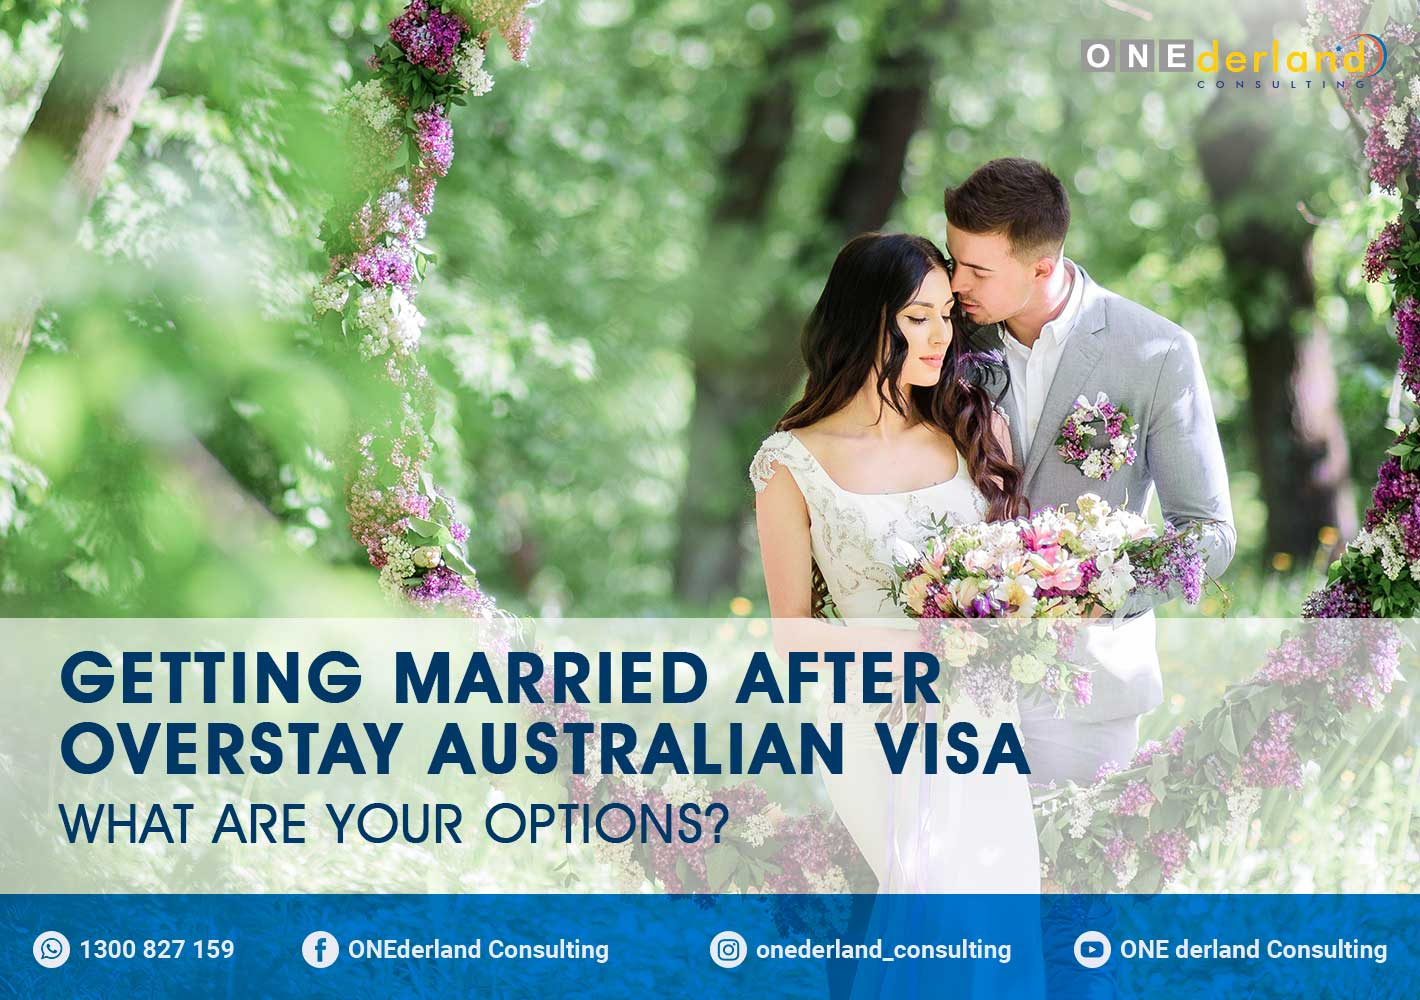 Getting Married After Overstay Australian Visa, What Are Your Options?